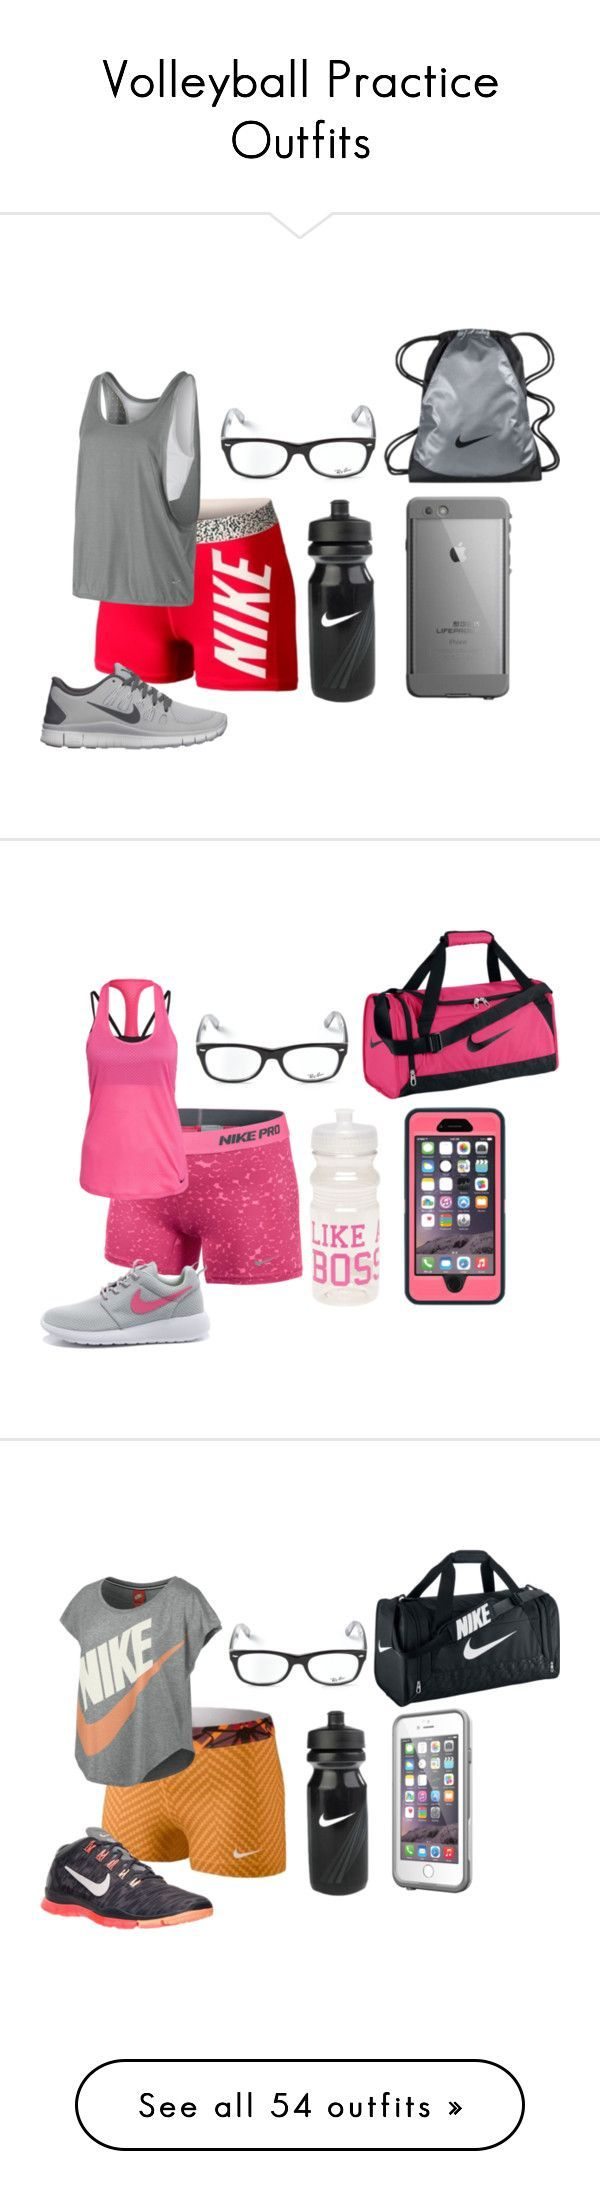 Volleyball Practice Outfits by mbvs on Polyvore...